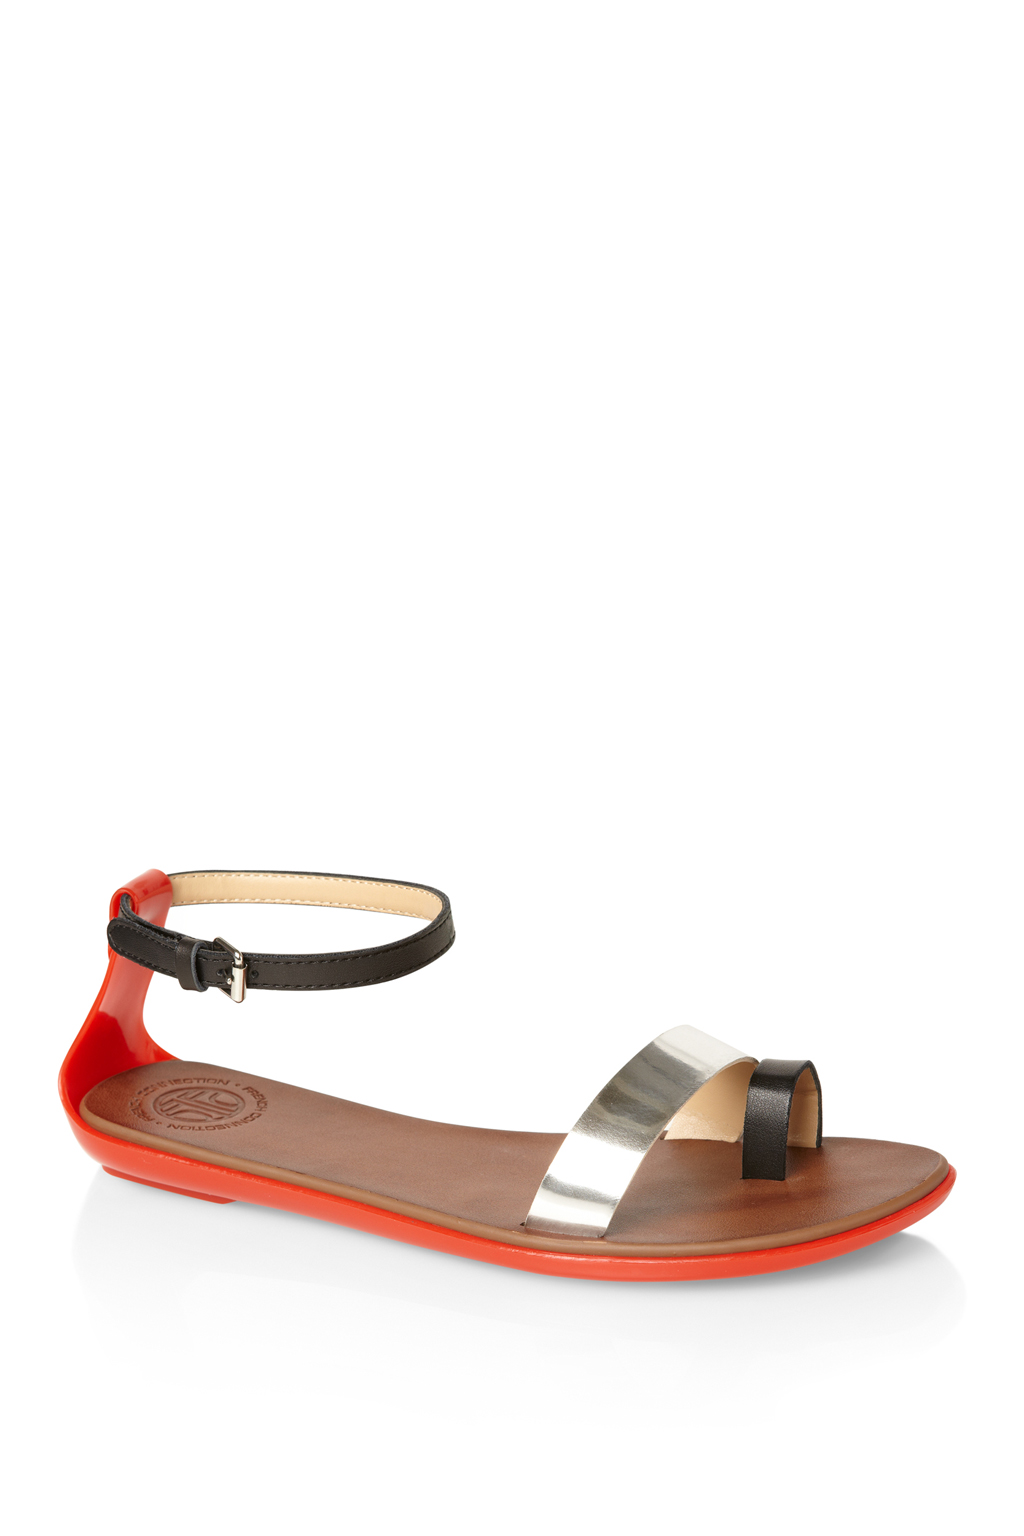 974b6ed5132f Lyst - French Connection Terri Flat Sandals in Black